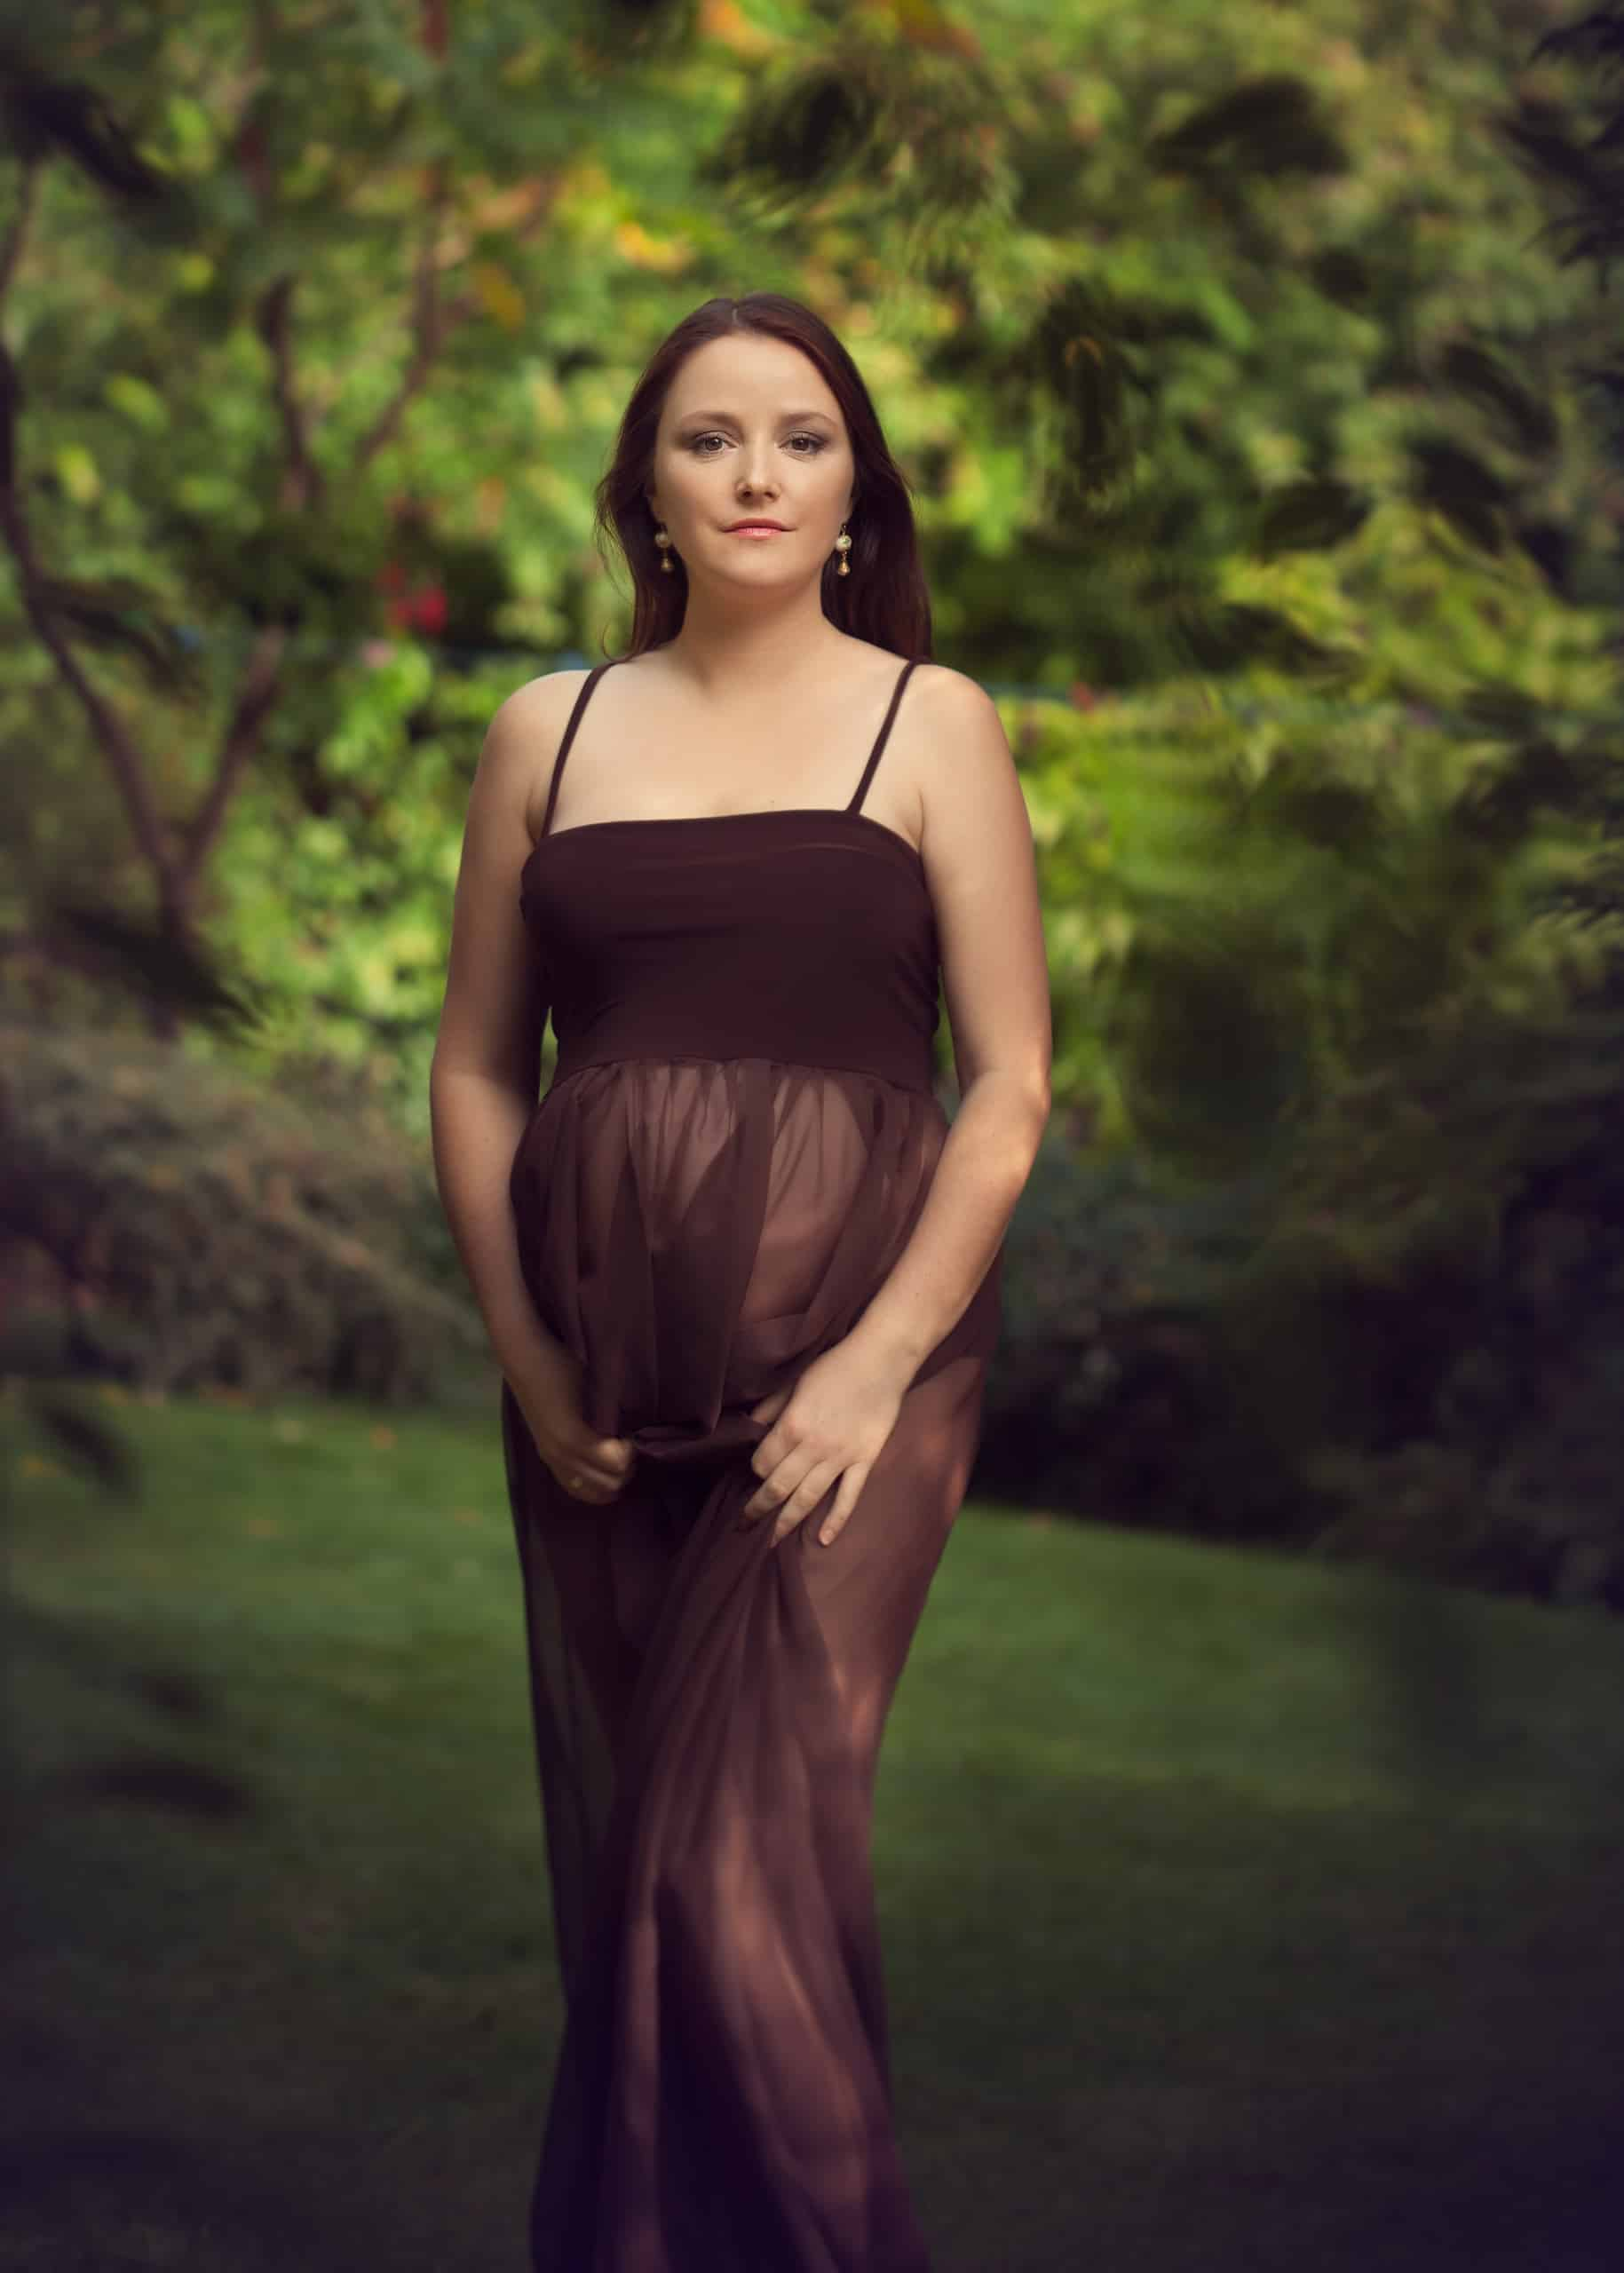 maternity photo session outdoors